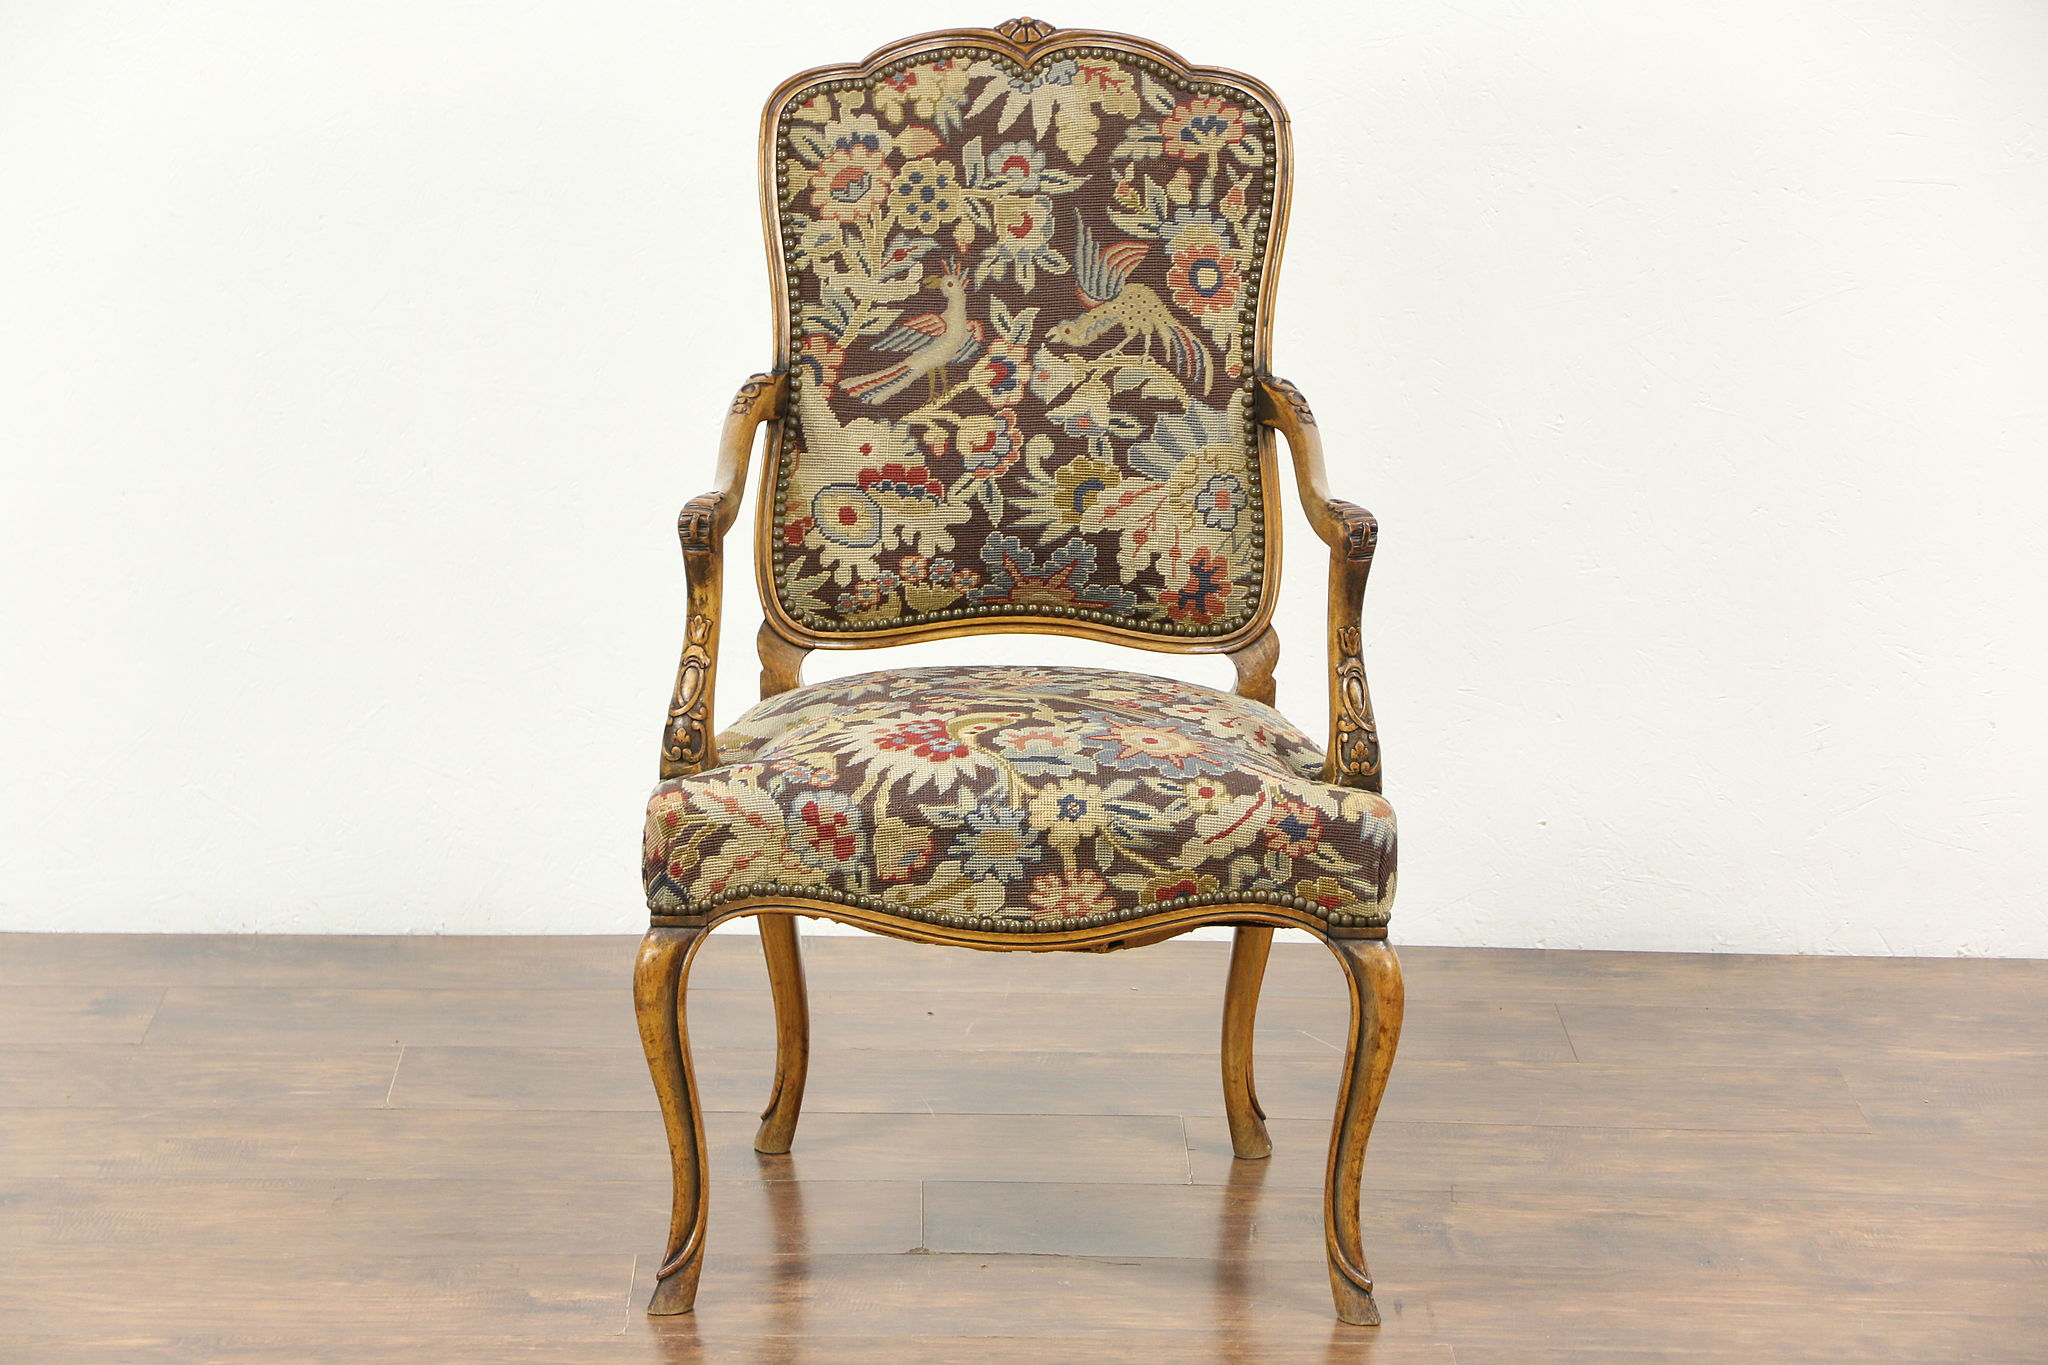 Scandinavian Chair Carved Antique Scandinavian Chair Needlepoint Petit Point Upholstery